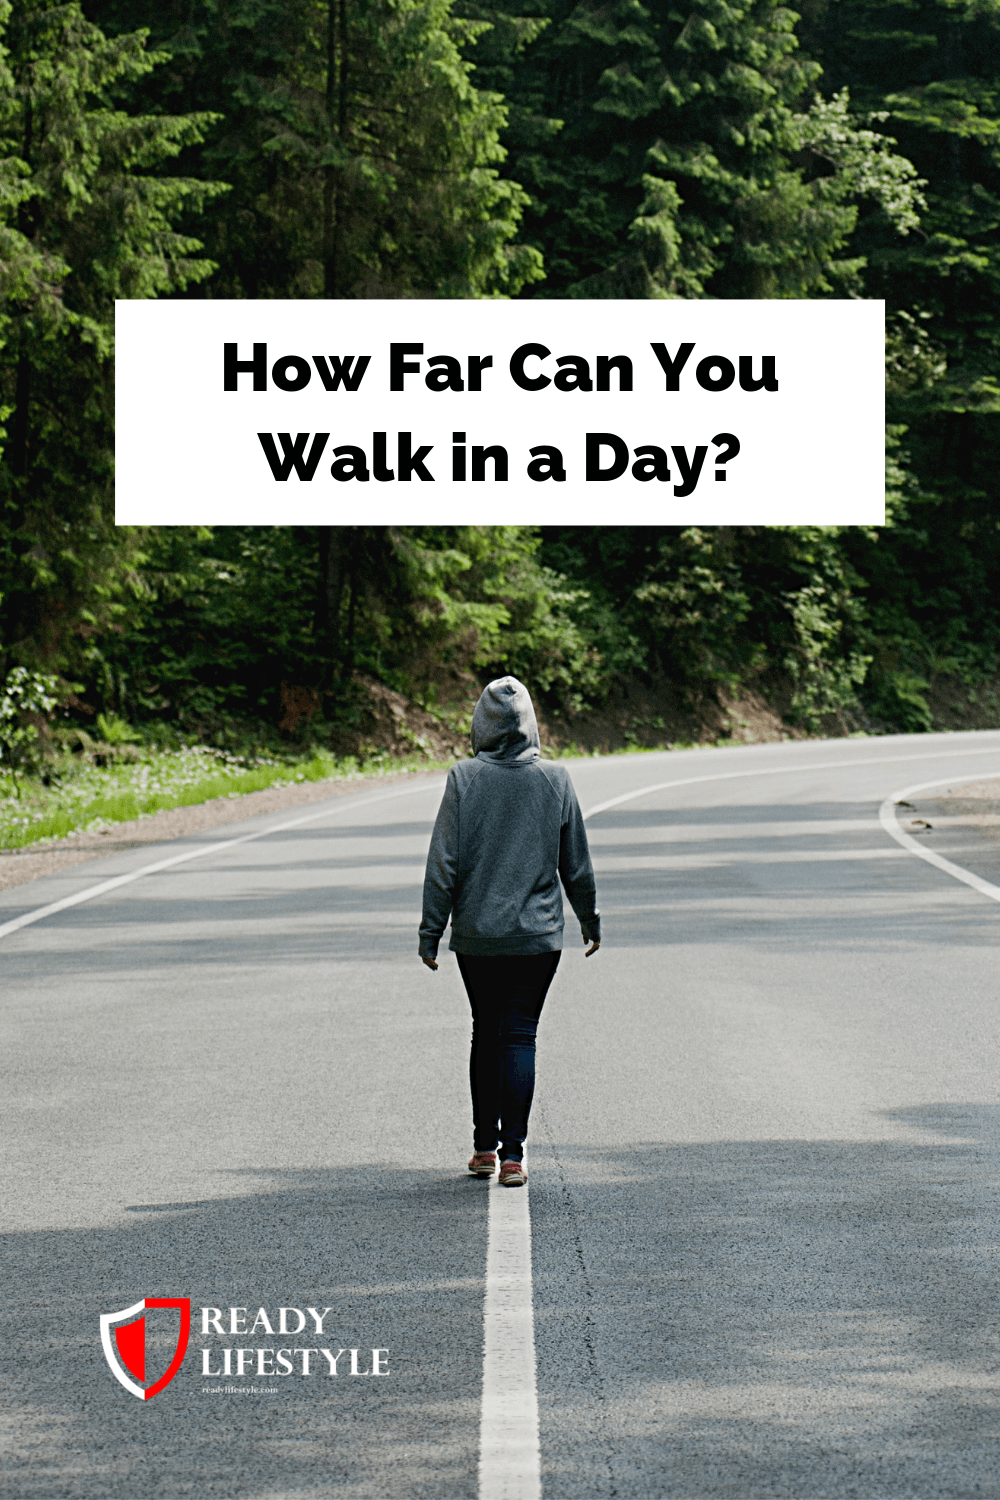 How Far Can You Walk in a Day?